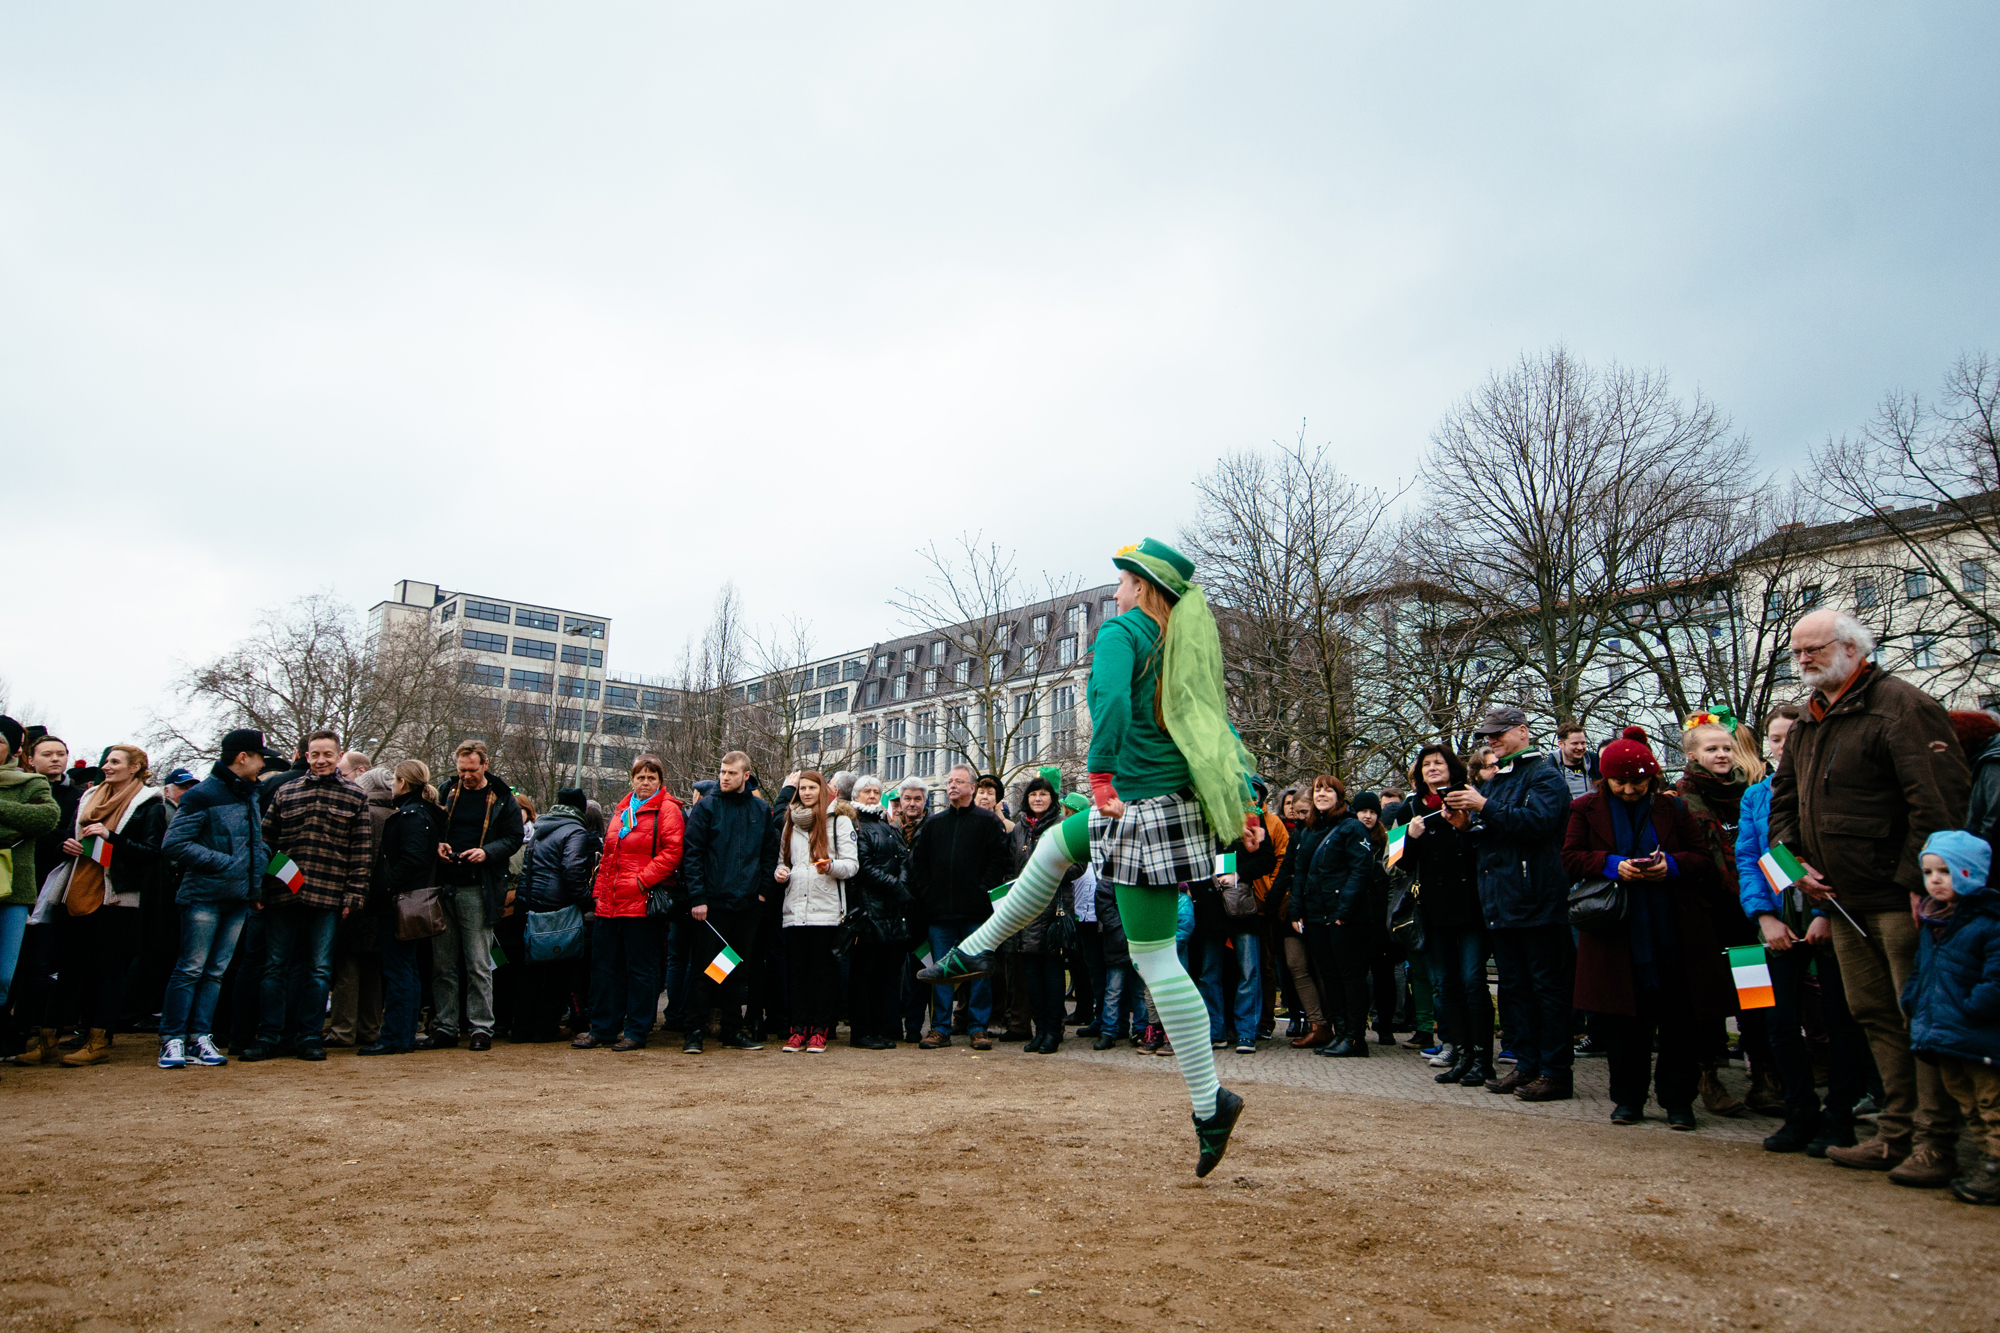 st-patricks-day-berlin-©-camille-blake-49.jpg